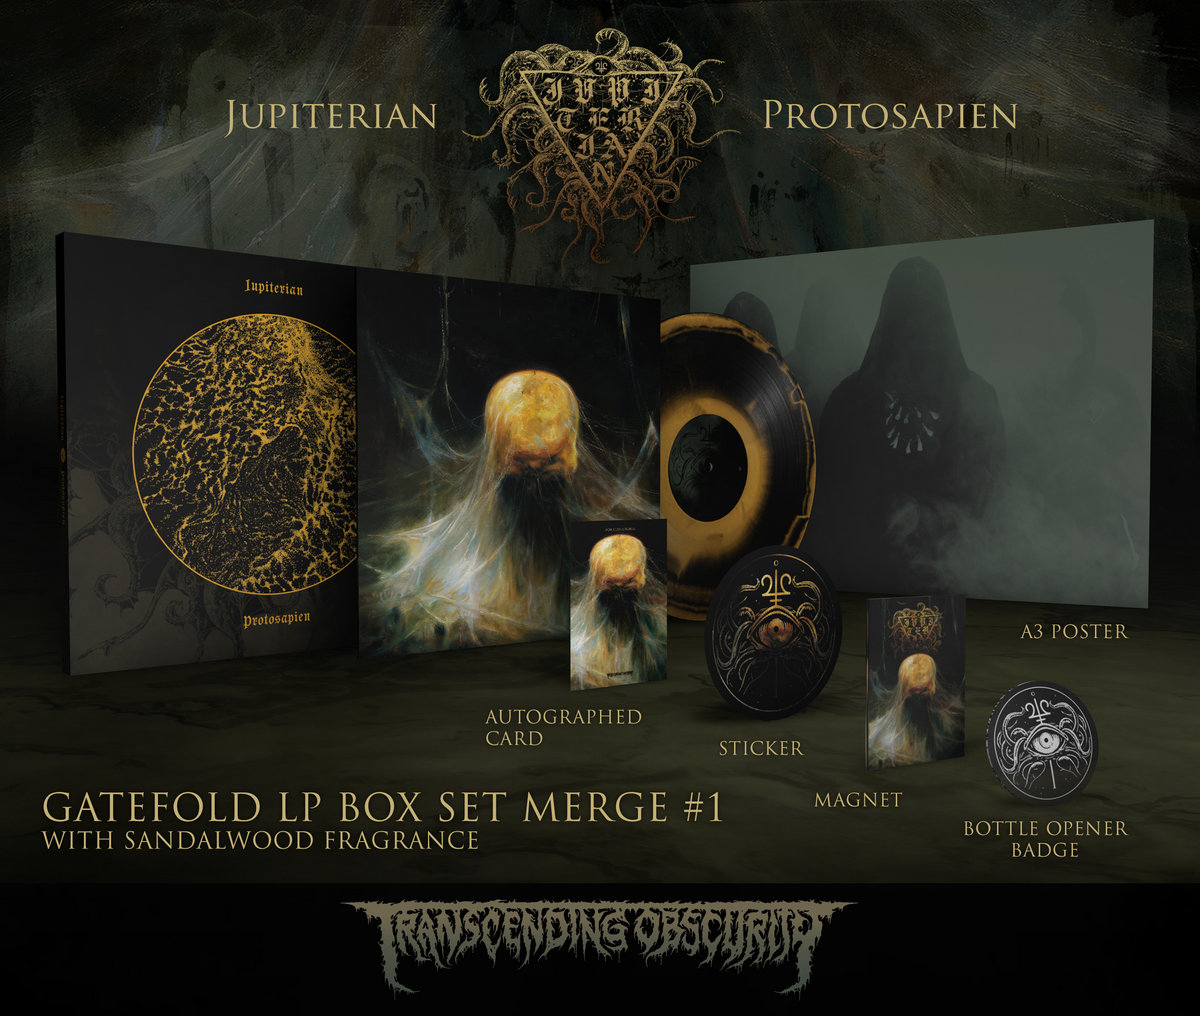 JUPITERIAN - Protosapien Autographed Gold LP Box Set (Limited to 25) Merge #1 Variant